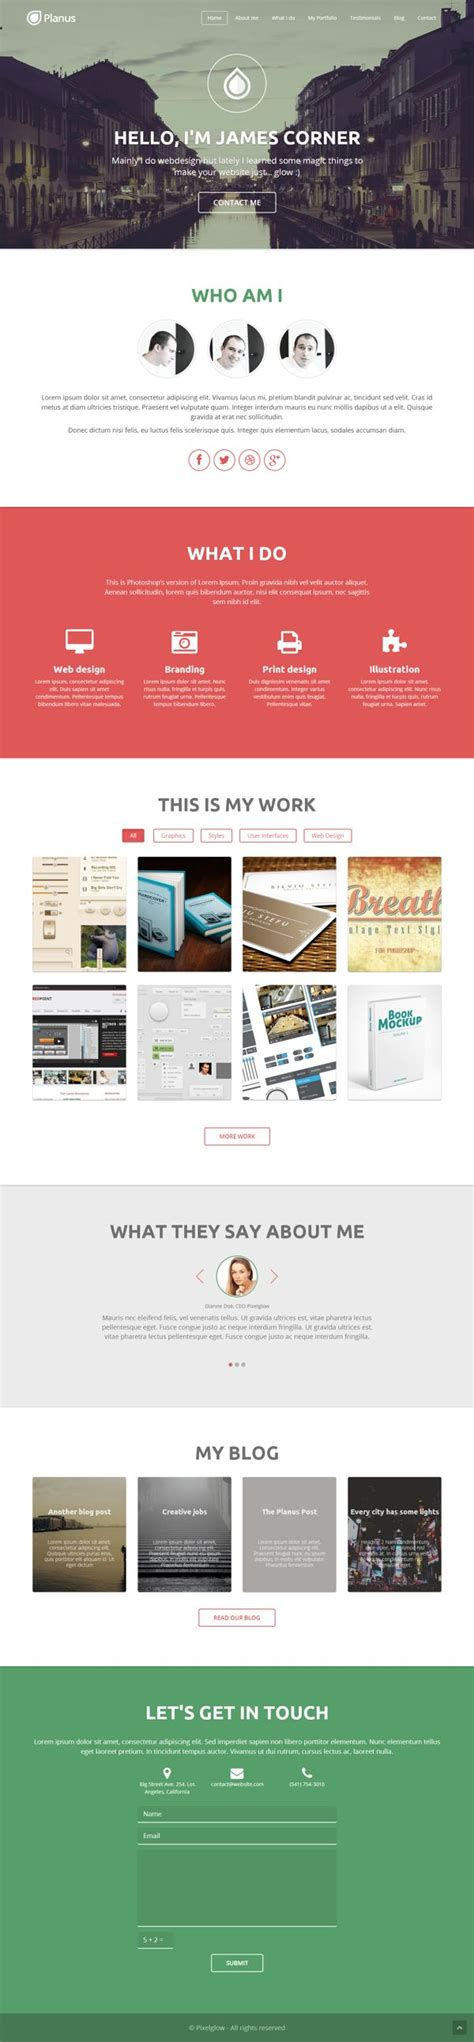 design portfolio header 17 best images about graphic distrations on pinterest